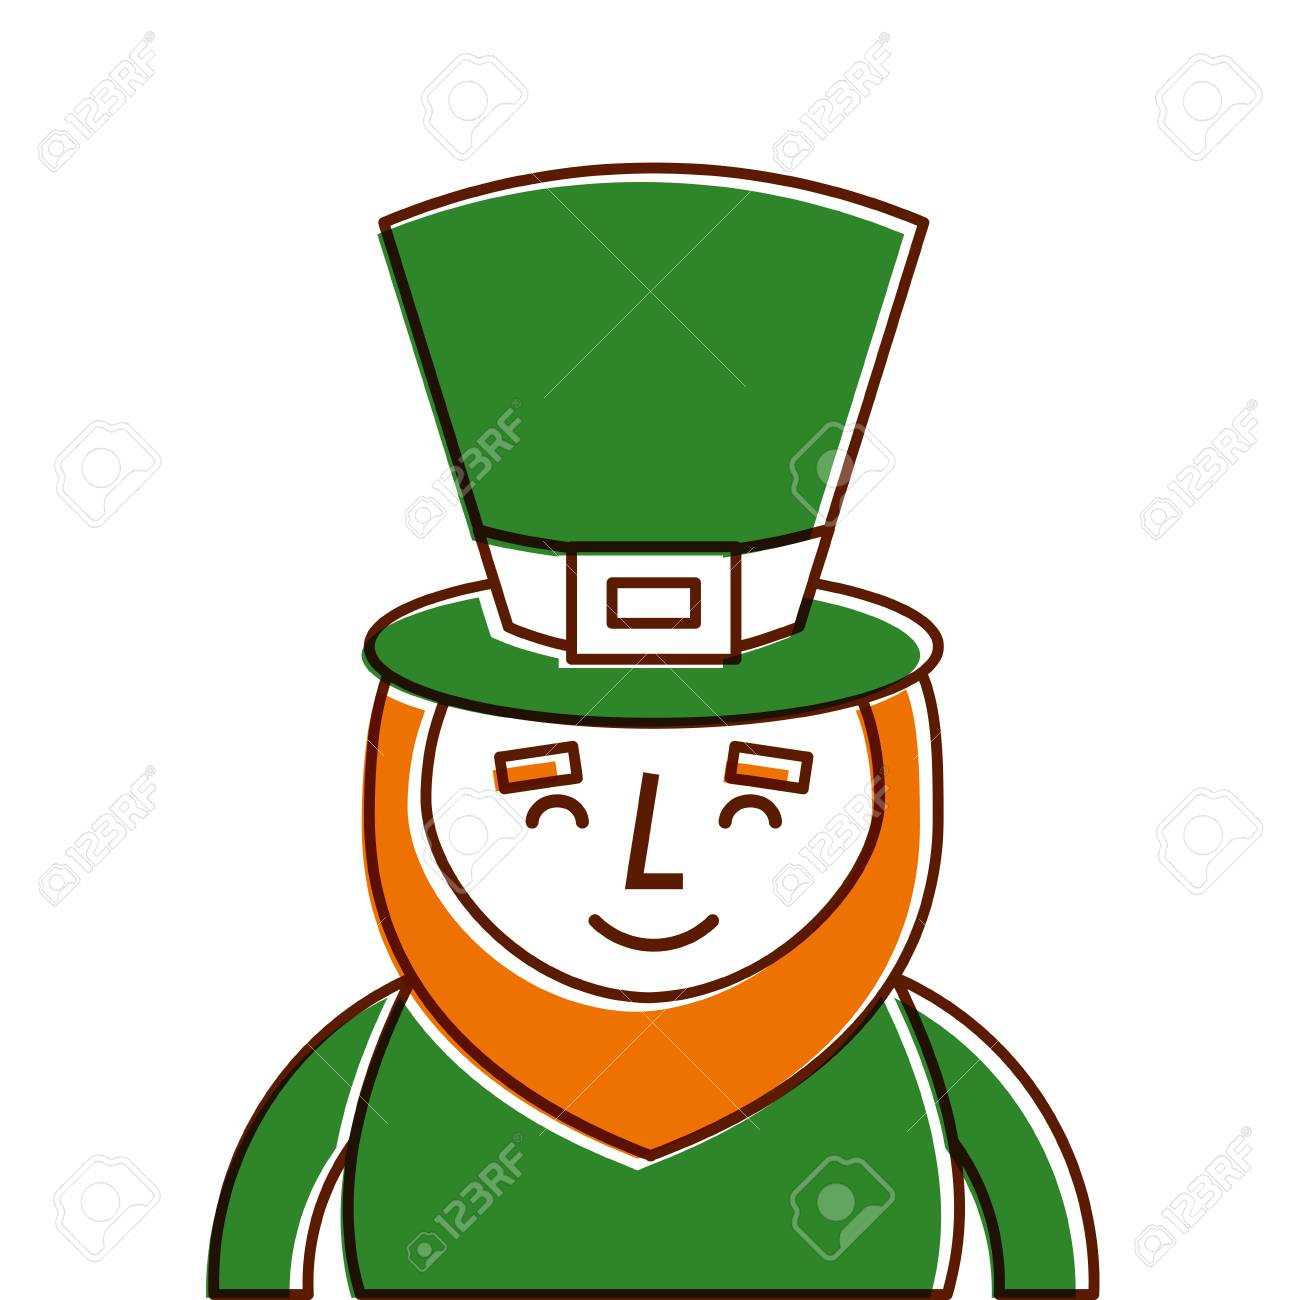 st patricks day portrait of a smiling leprechaun vector rh 123rf com leprechaun vector png leprechaun vector graphics